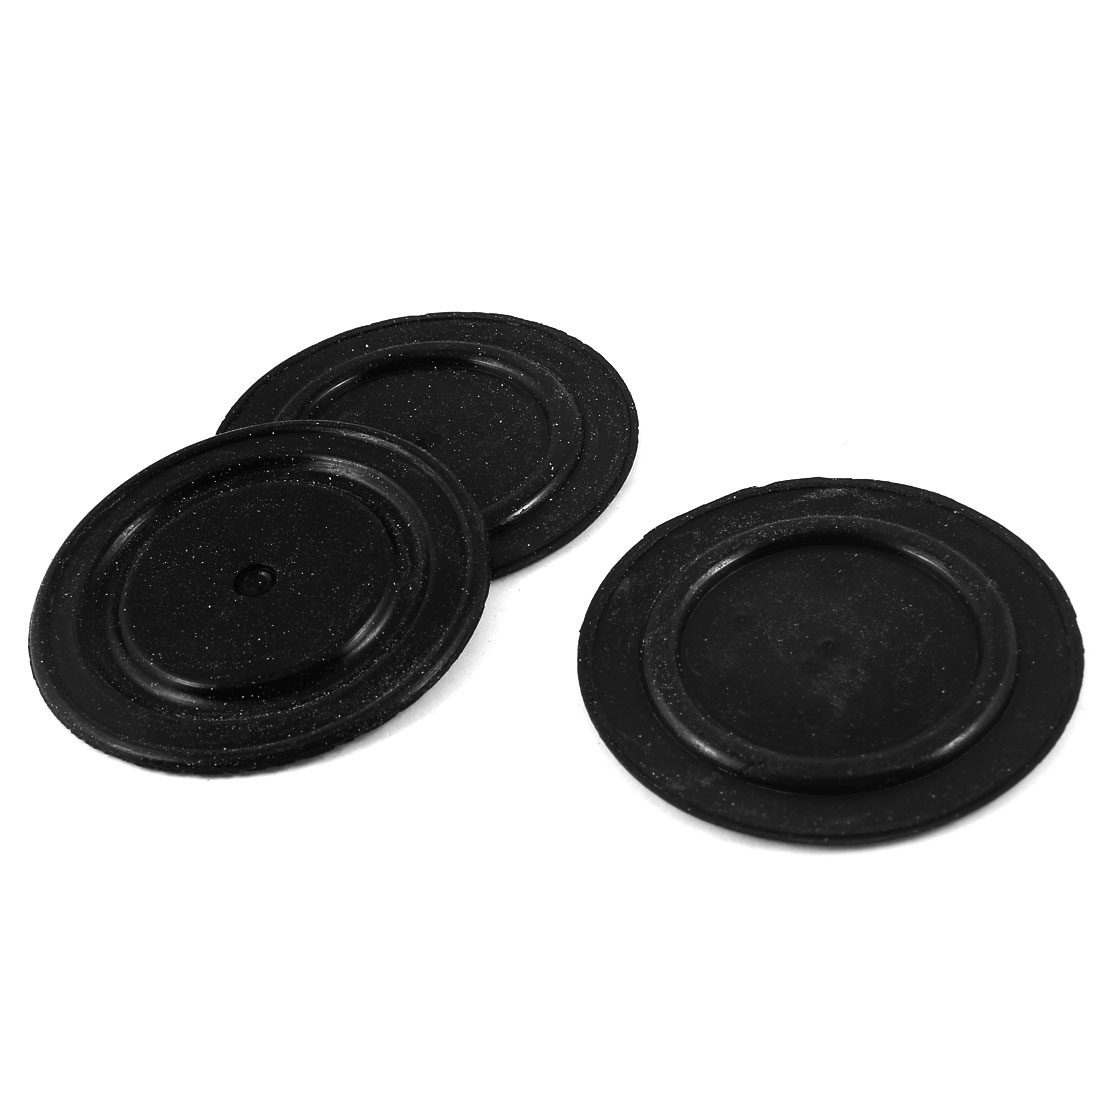 "3 Pcs 65mm 2.6"" Diameter Water Heater Diaphragms Seal Gasket Black"